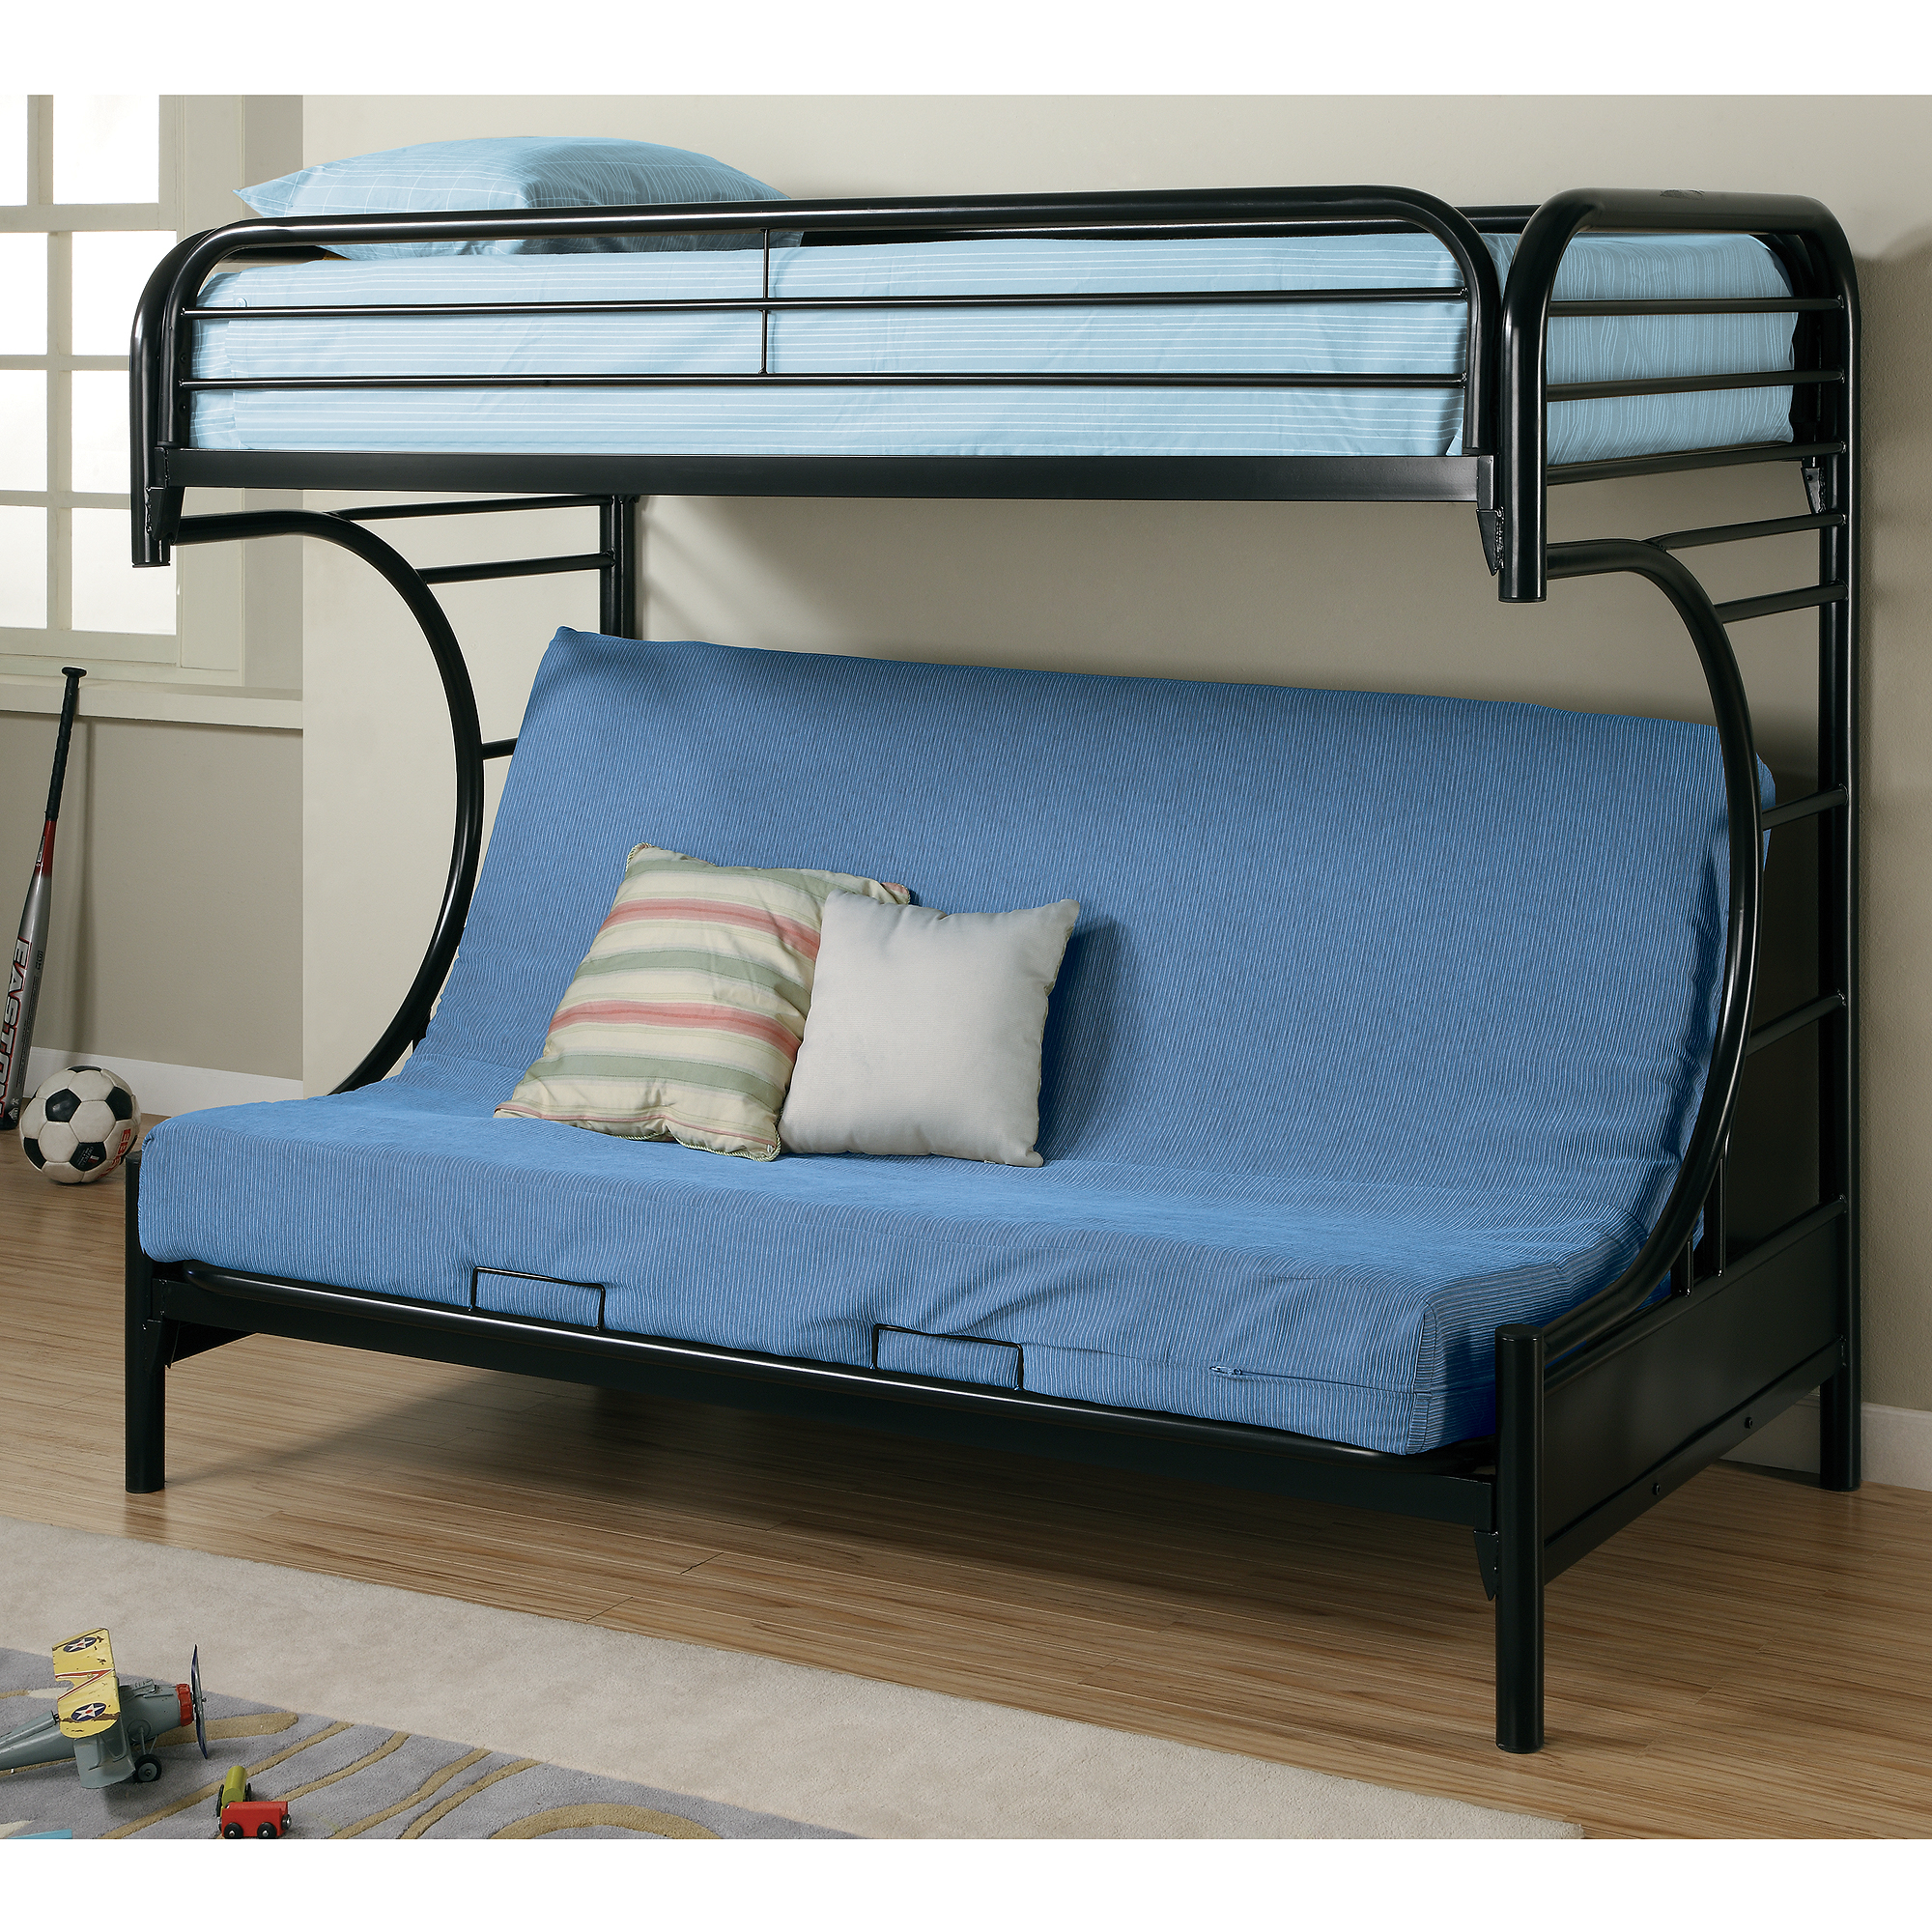 Metal bunk bed with slide - Metal Bunk Bed With Slide 53